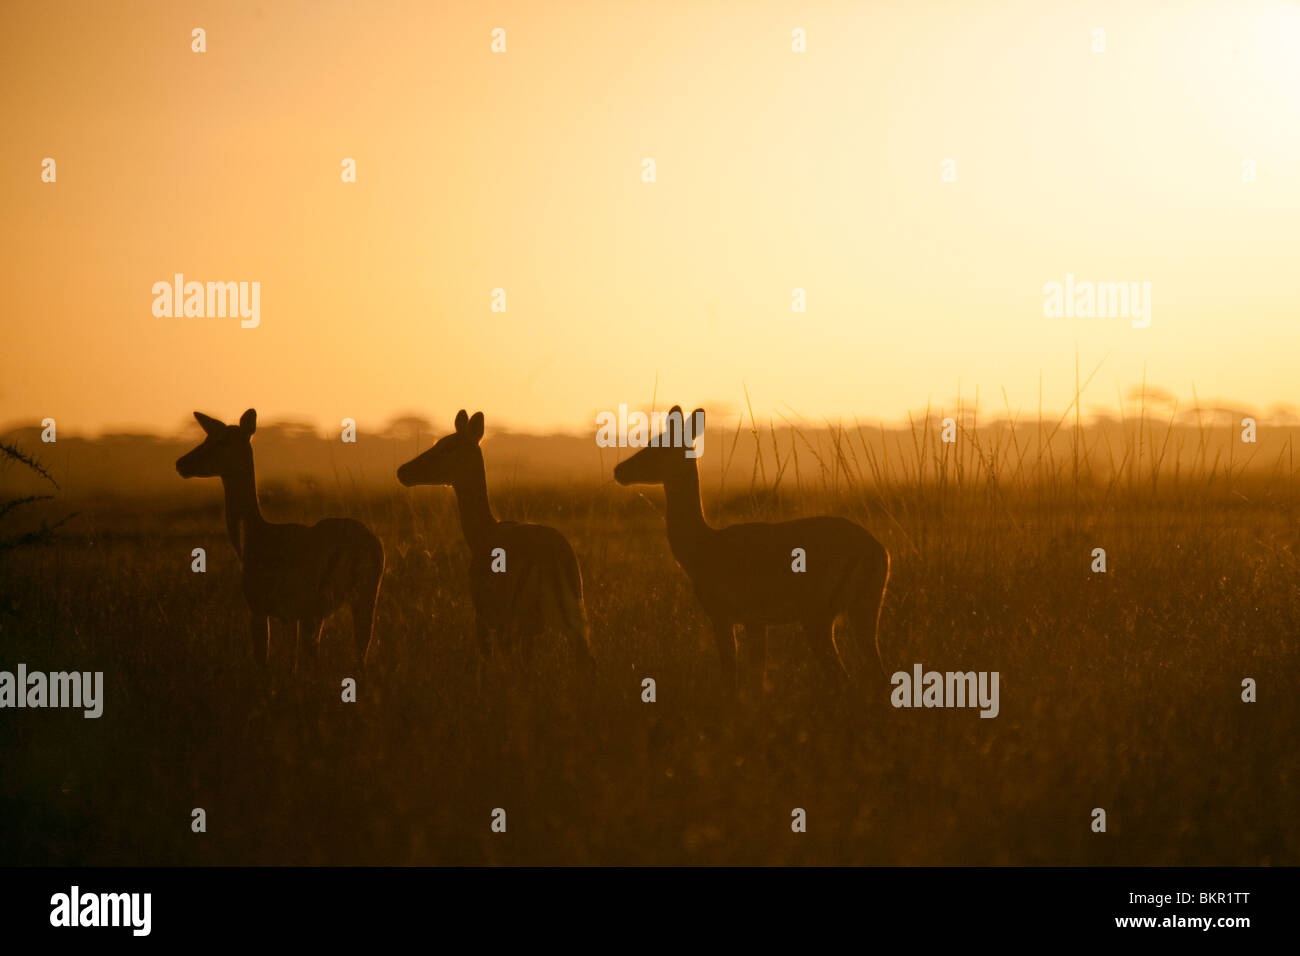 Tanzania, Serengeti. A small herd of impala alert in the early morning mist. - Stock Image